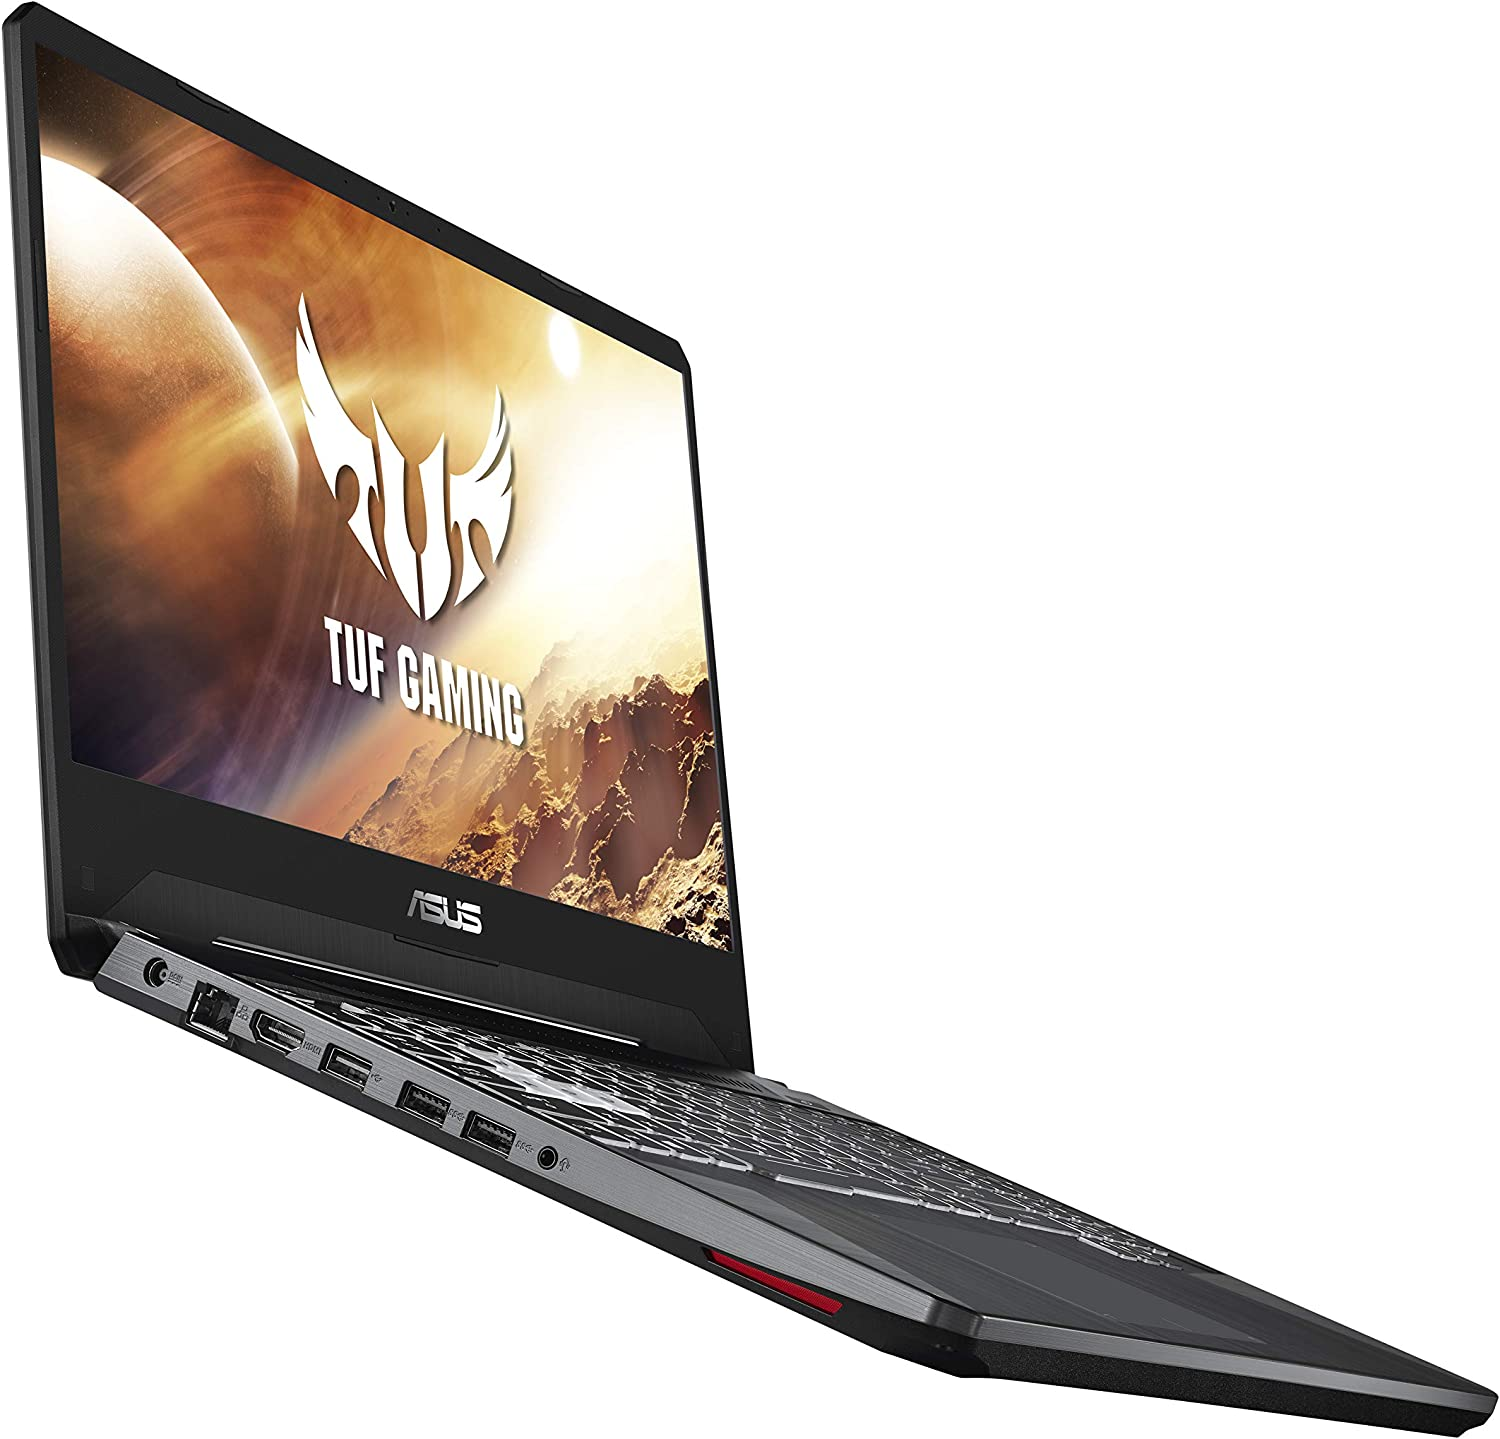 "ASUS TUF Gaming Laptop, 15.6"" Full HD IPS-Type, Intel Core i5-9300H, GeForce GTX 1650, 8GB DDR4, 512GB PCIe SSD, Gigabit Wi-Fi 5, Windows 10 Home, FX505GT-US52"